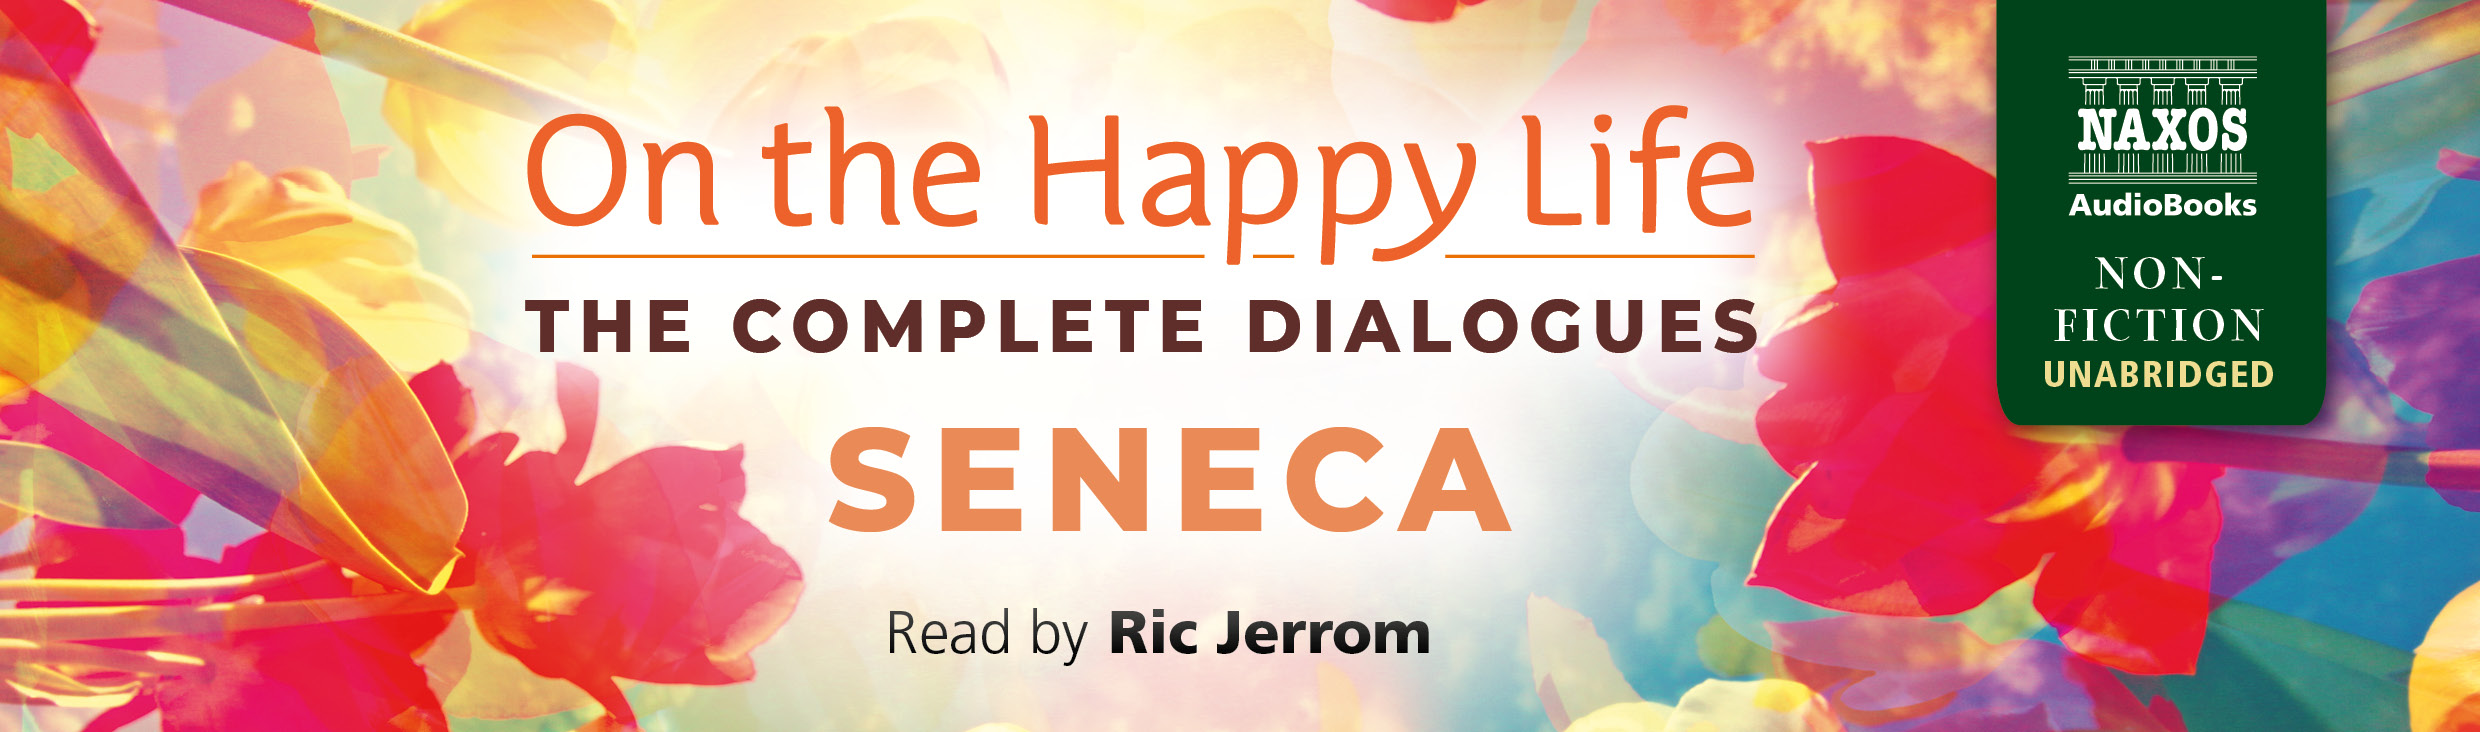 On the Happy Life – The Complete Dialogues (unabridged)